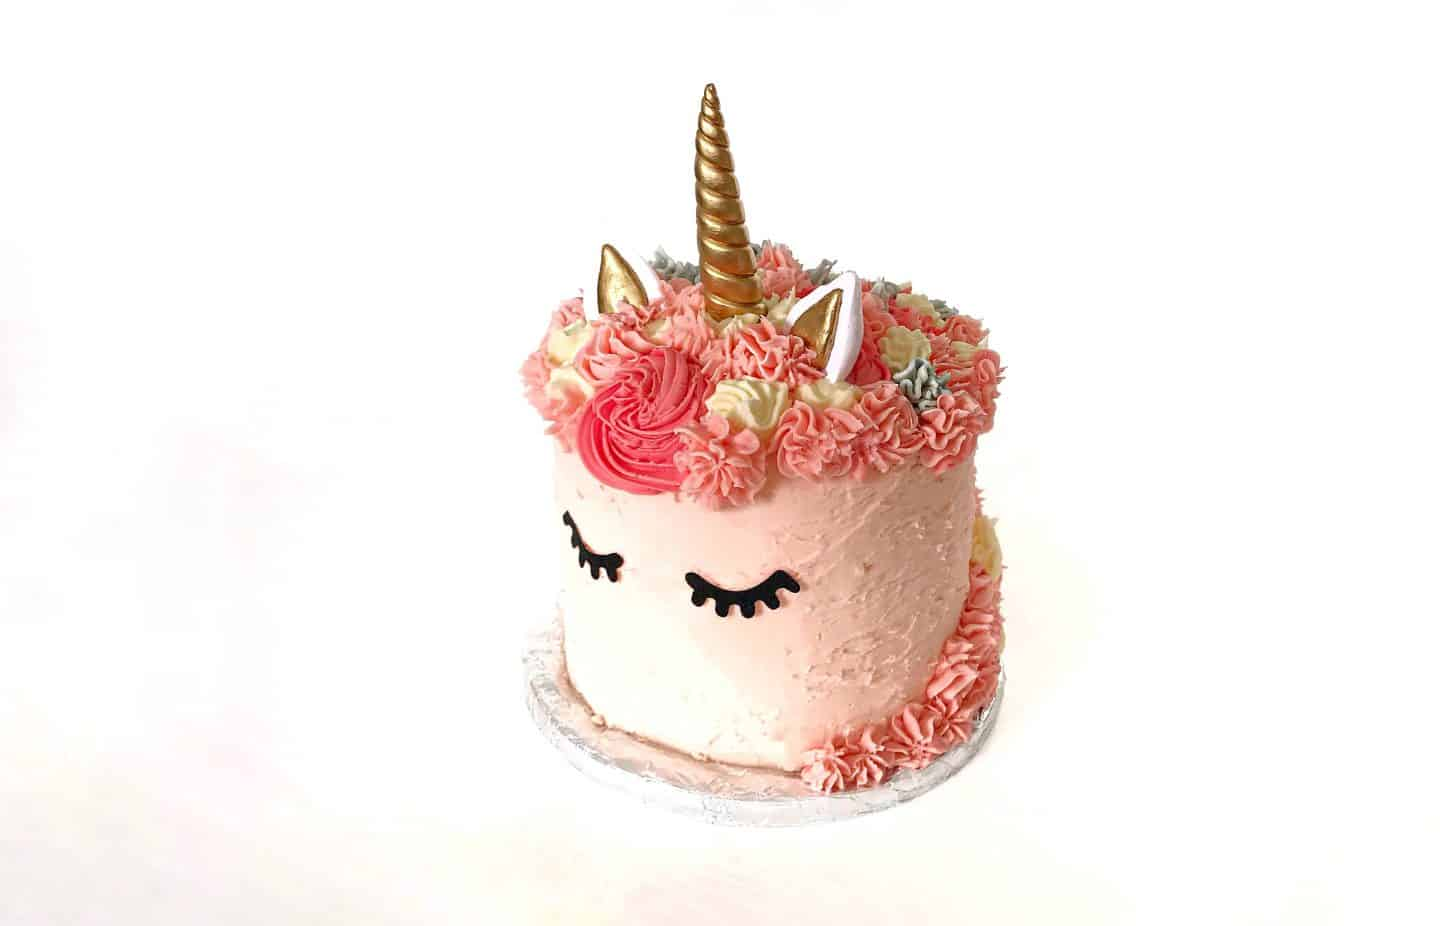 How to Make a Super Cute Rainbow Unicorn Cake